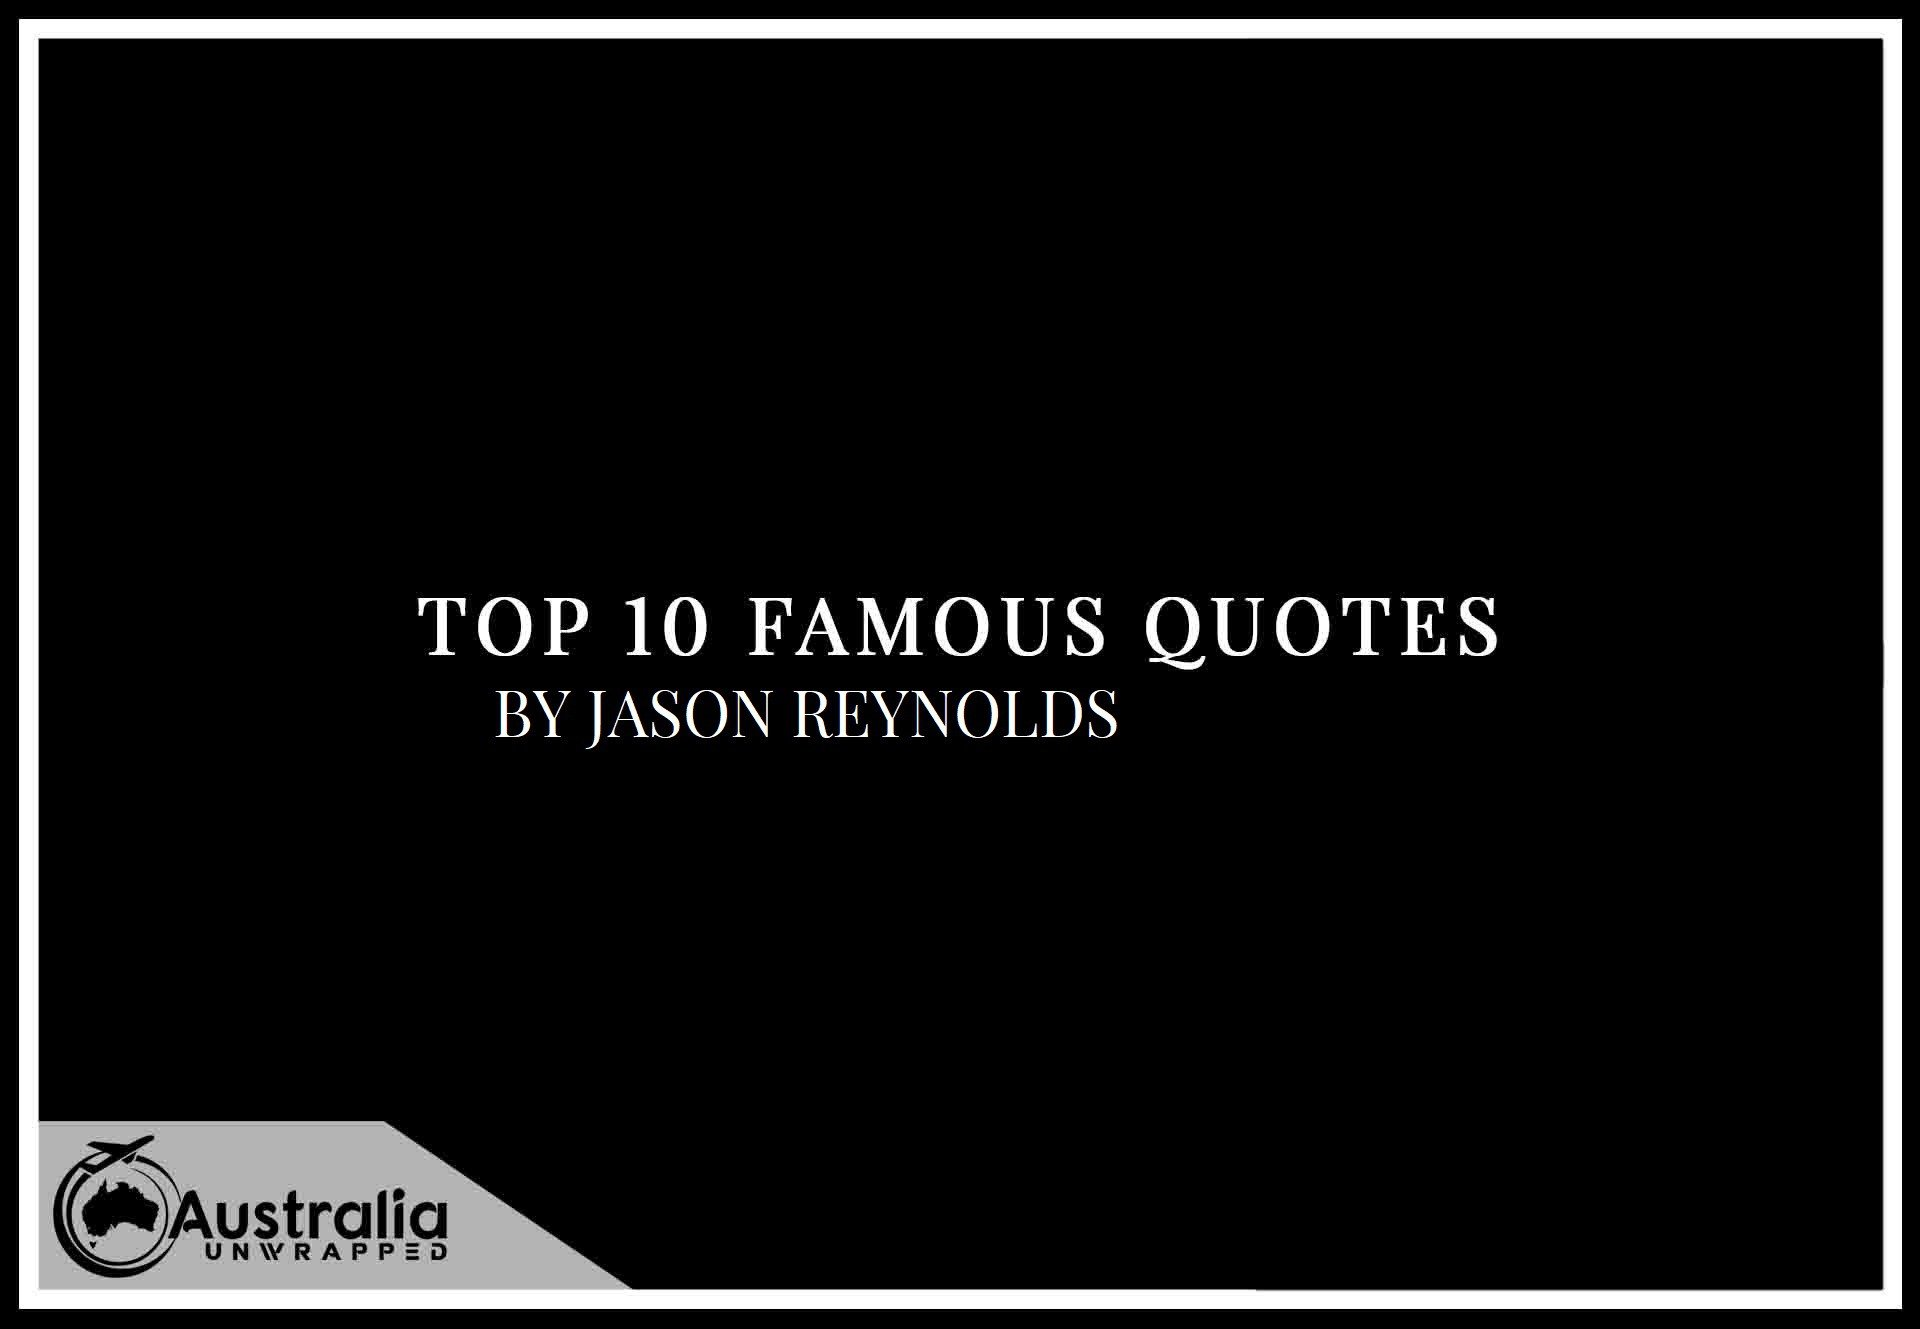 Top 10 Famous Quotes by Author Jason Reynolds